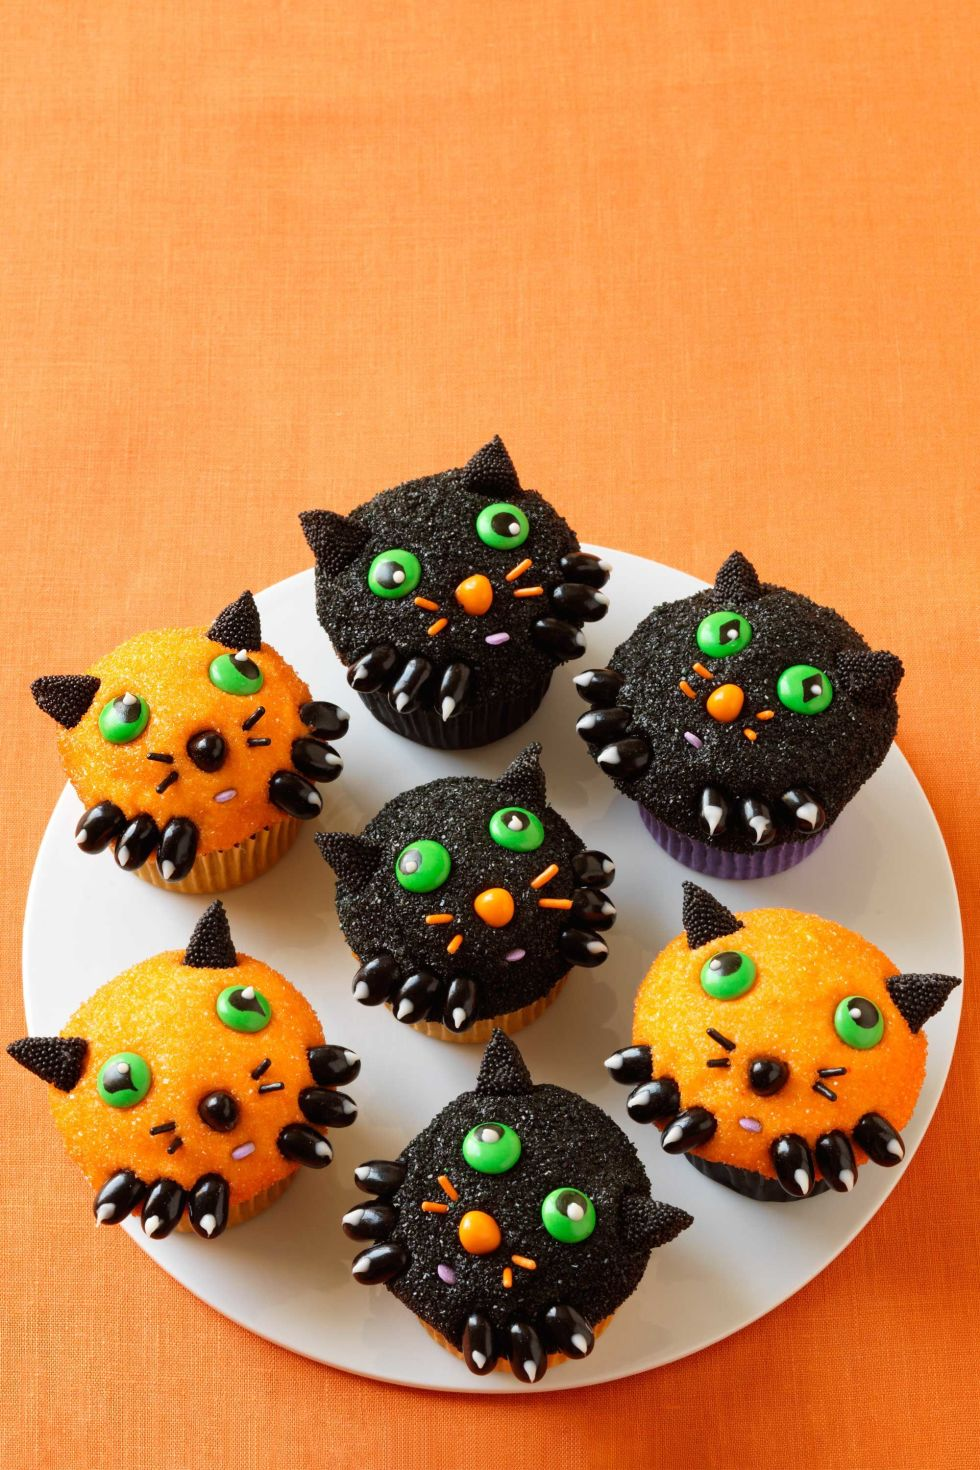 35 halloween cupcake ideas recipes for cute and scary halloween desserts - Scary Halloween Cupcake Ideas